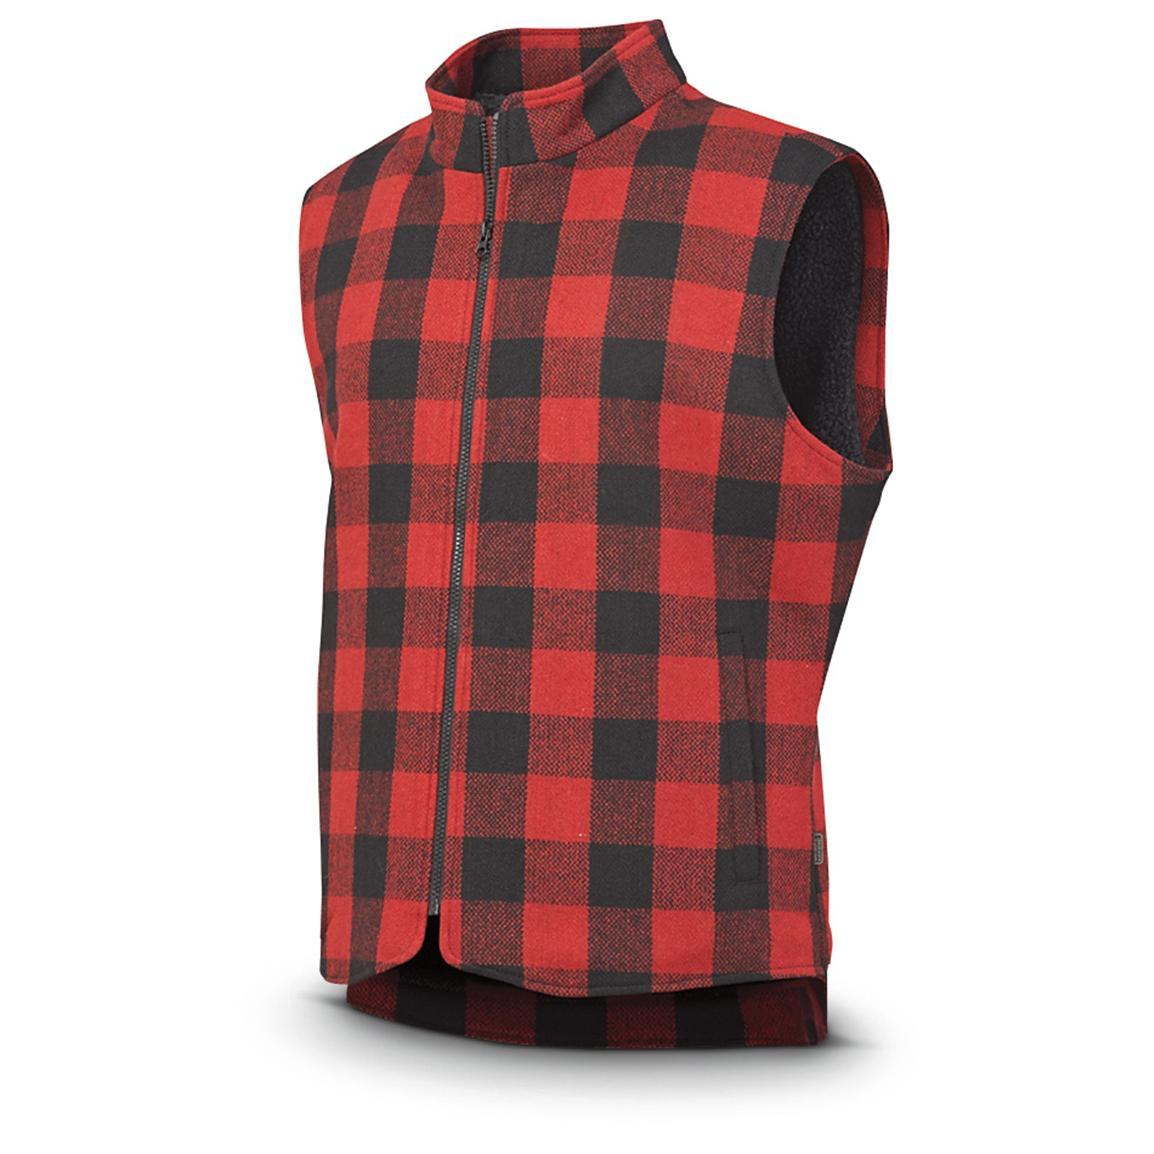 Irish Setter® Field Camp Vest, Red / Black Plaid